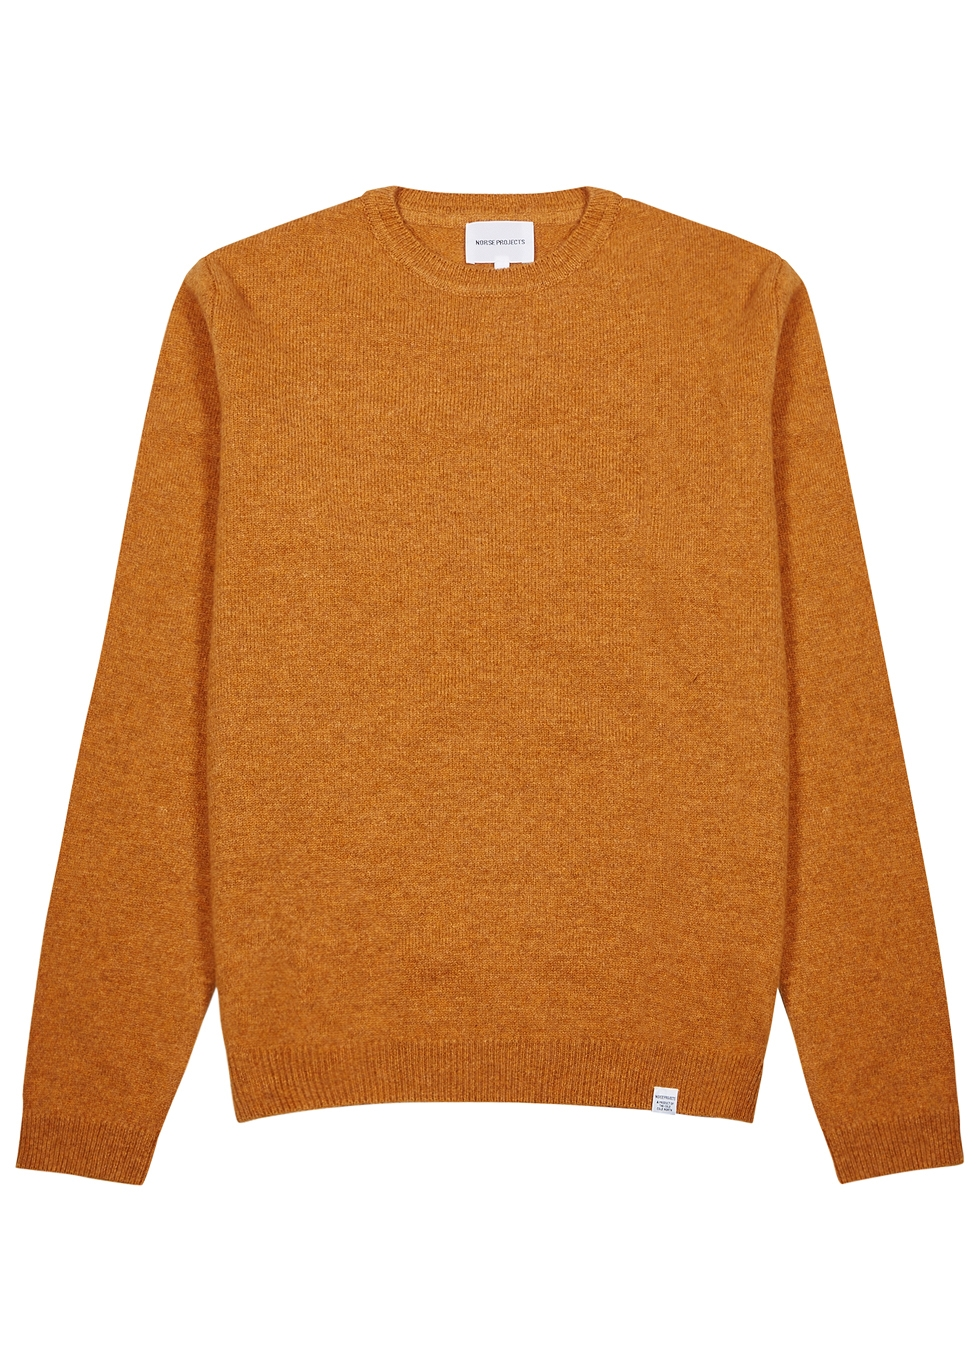 NORSE PROJECTS SIGFRED BURNT ORANGE WOOL JUMPER